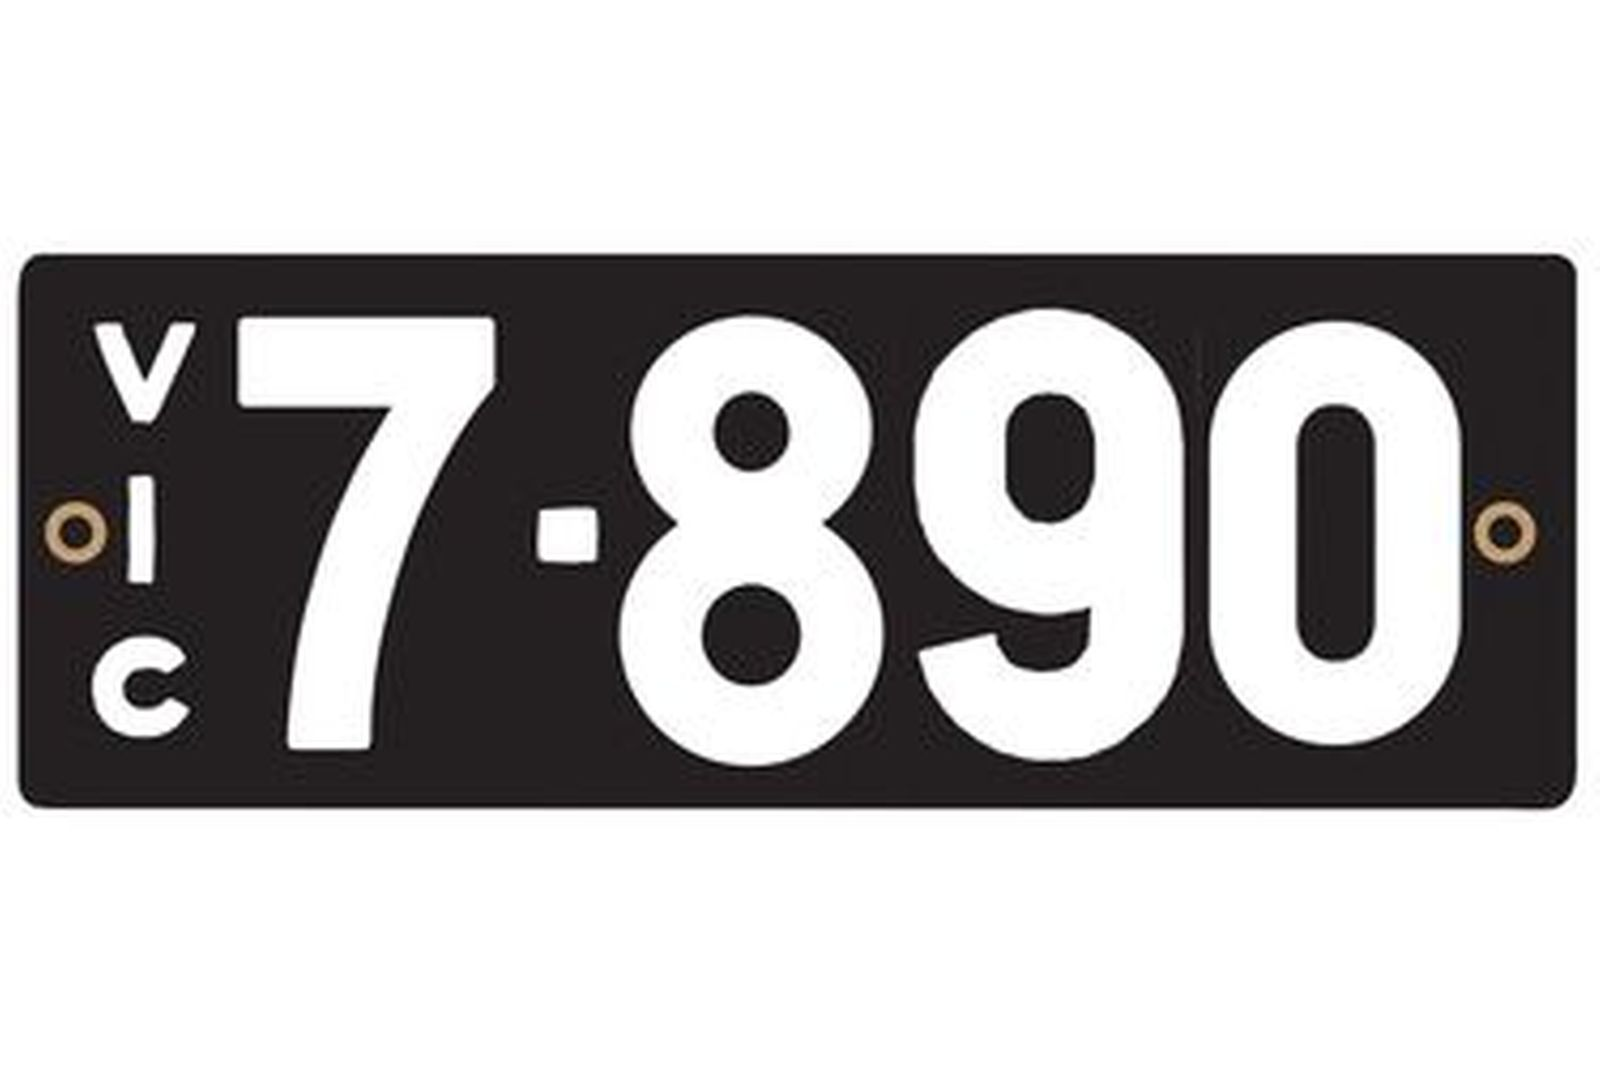 Victorian Heritage Numerical Number Plate - 7.890